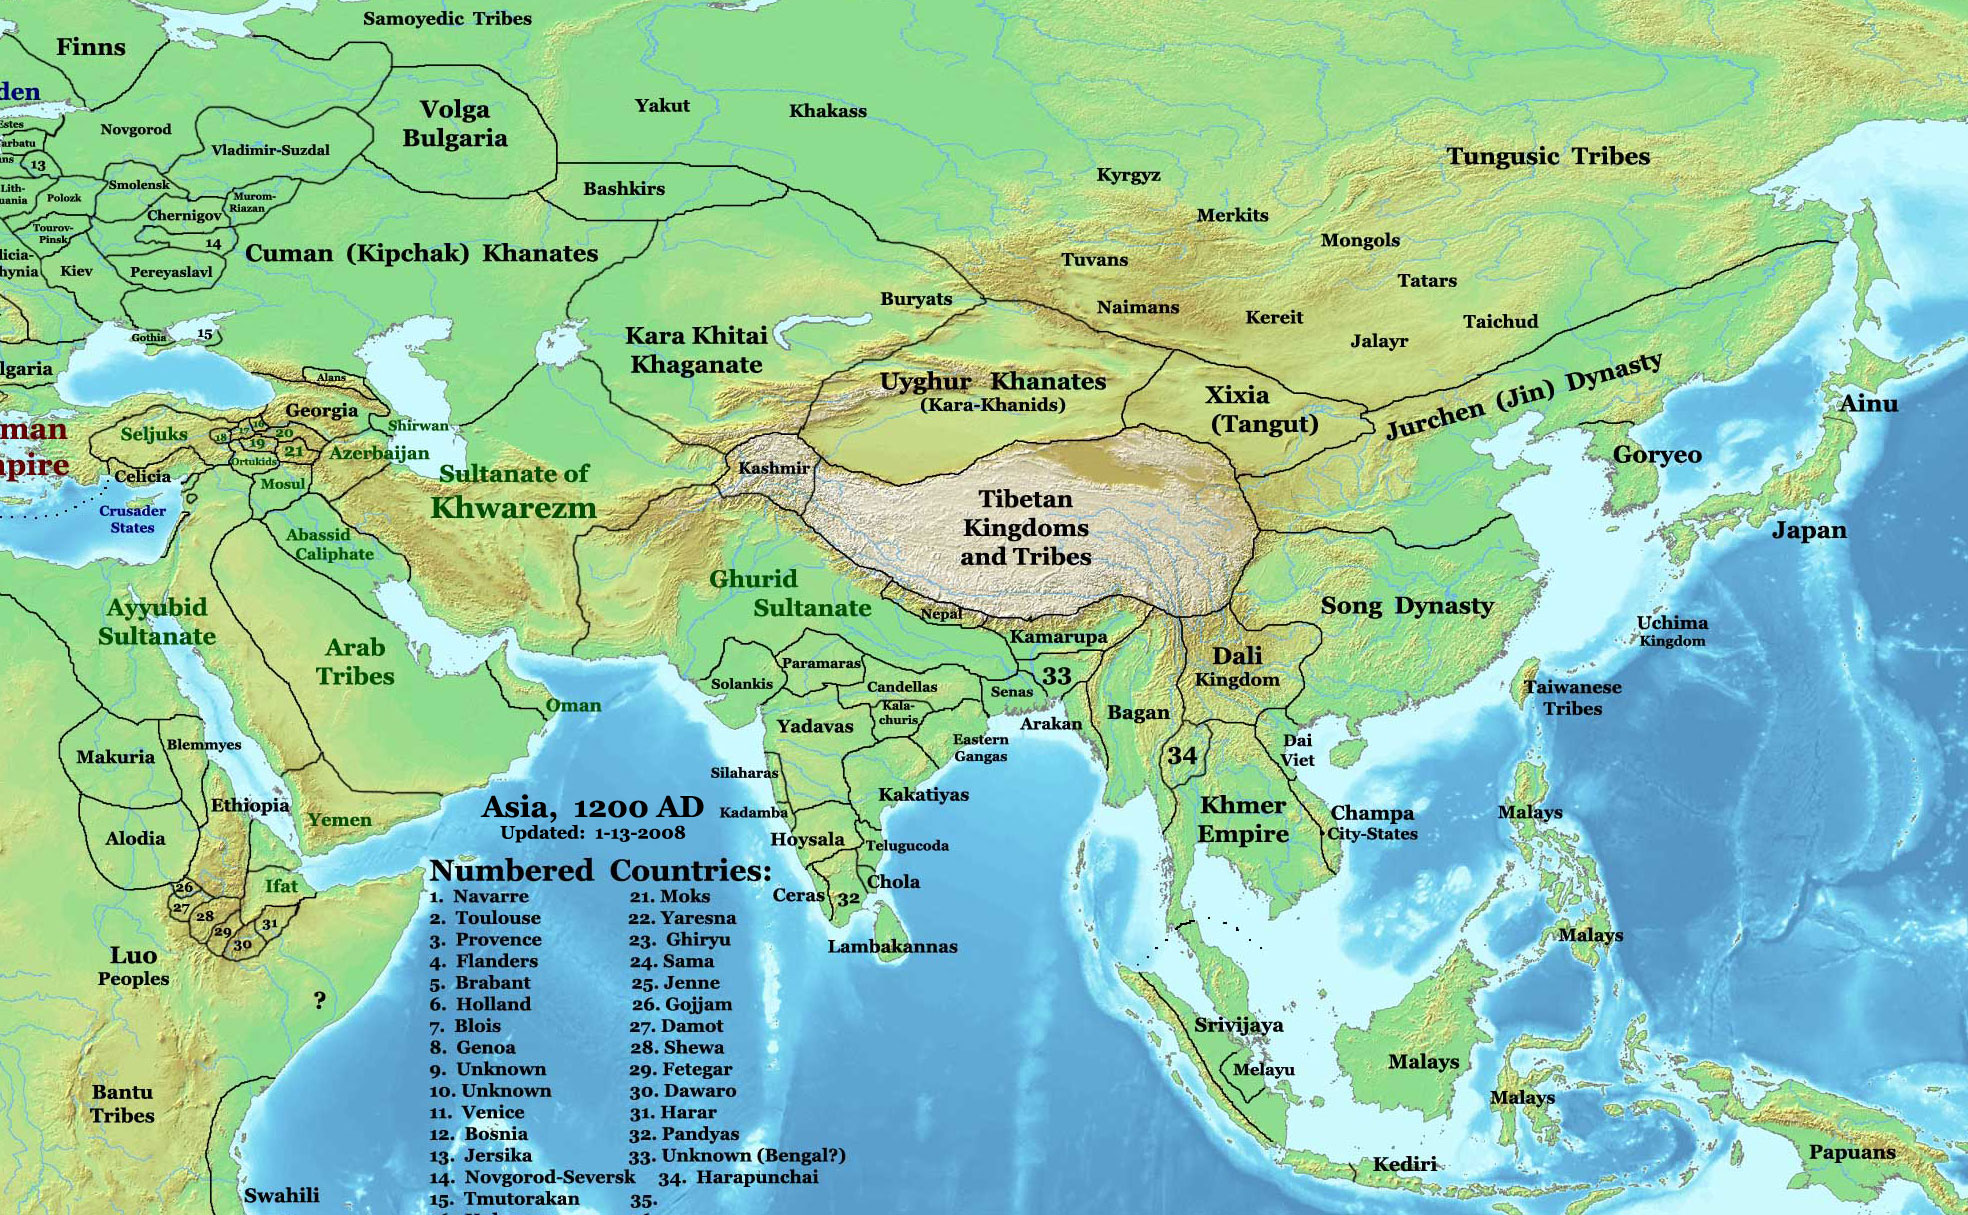 http://upload.wikimedia.org/wikipedia/commons/1/16/Asia_1200ad.jpg